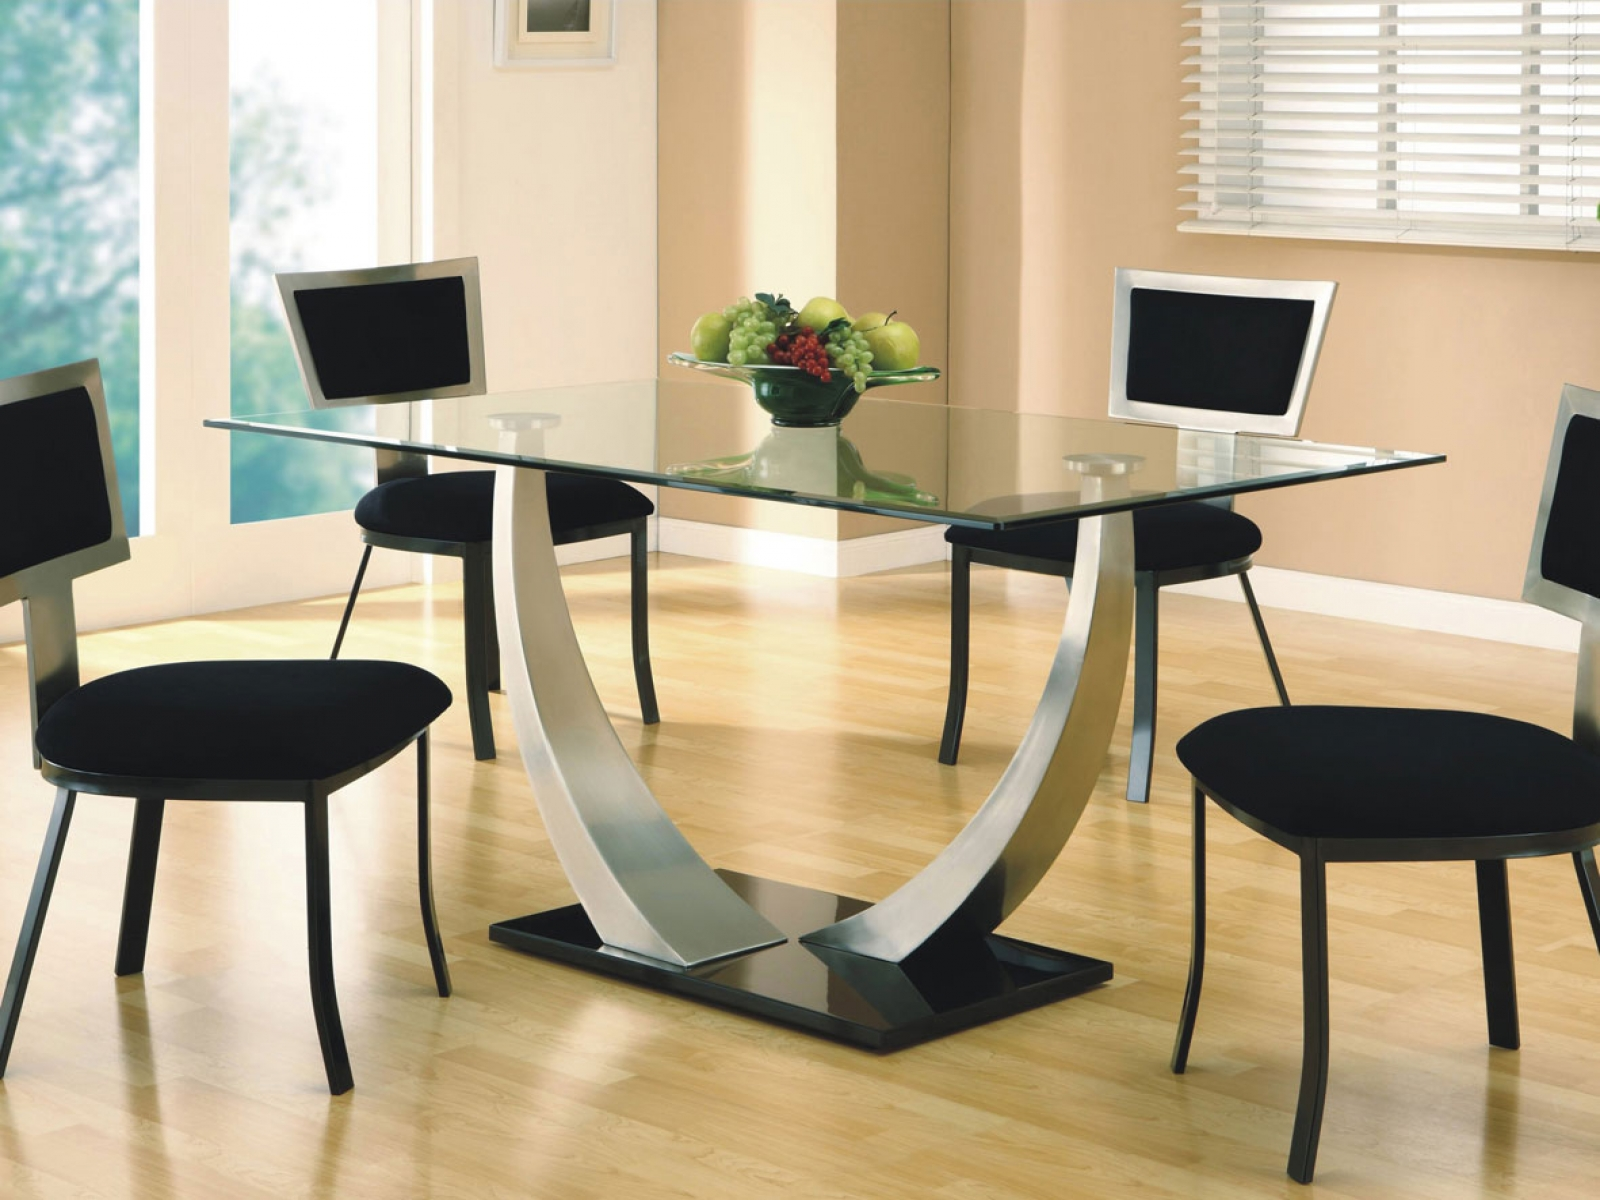 Square Dining Table Design For Your Home Decor